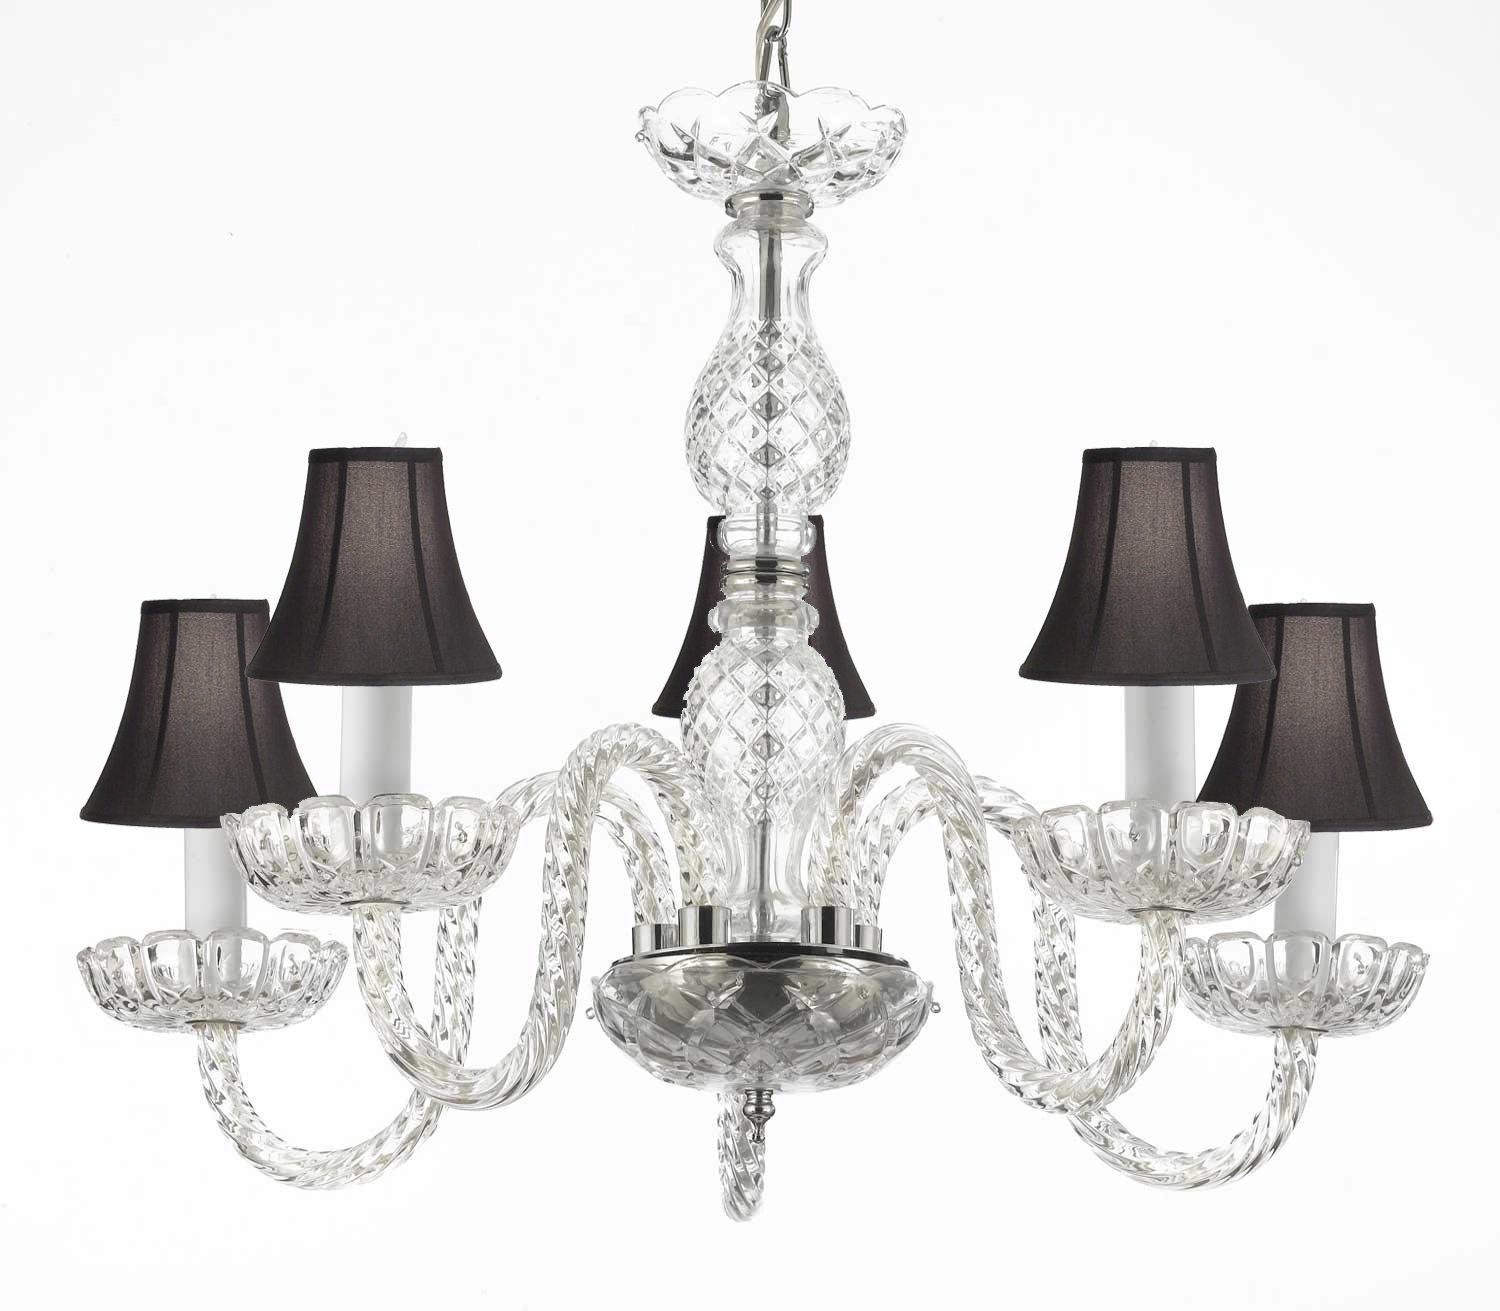 Venetian Style Crystal Chandelier Lighting With Black Shades H25 x W24